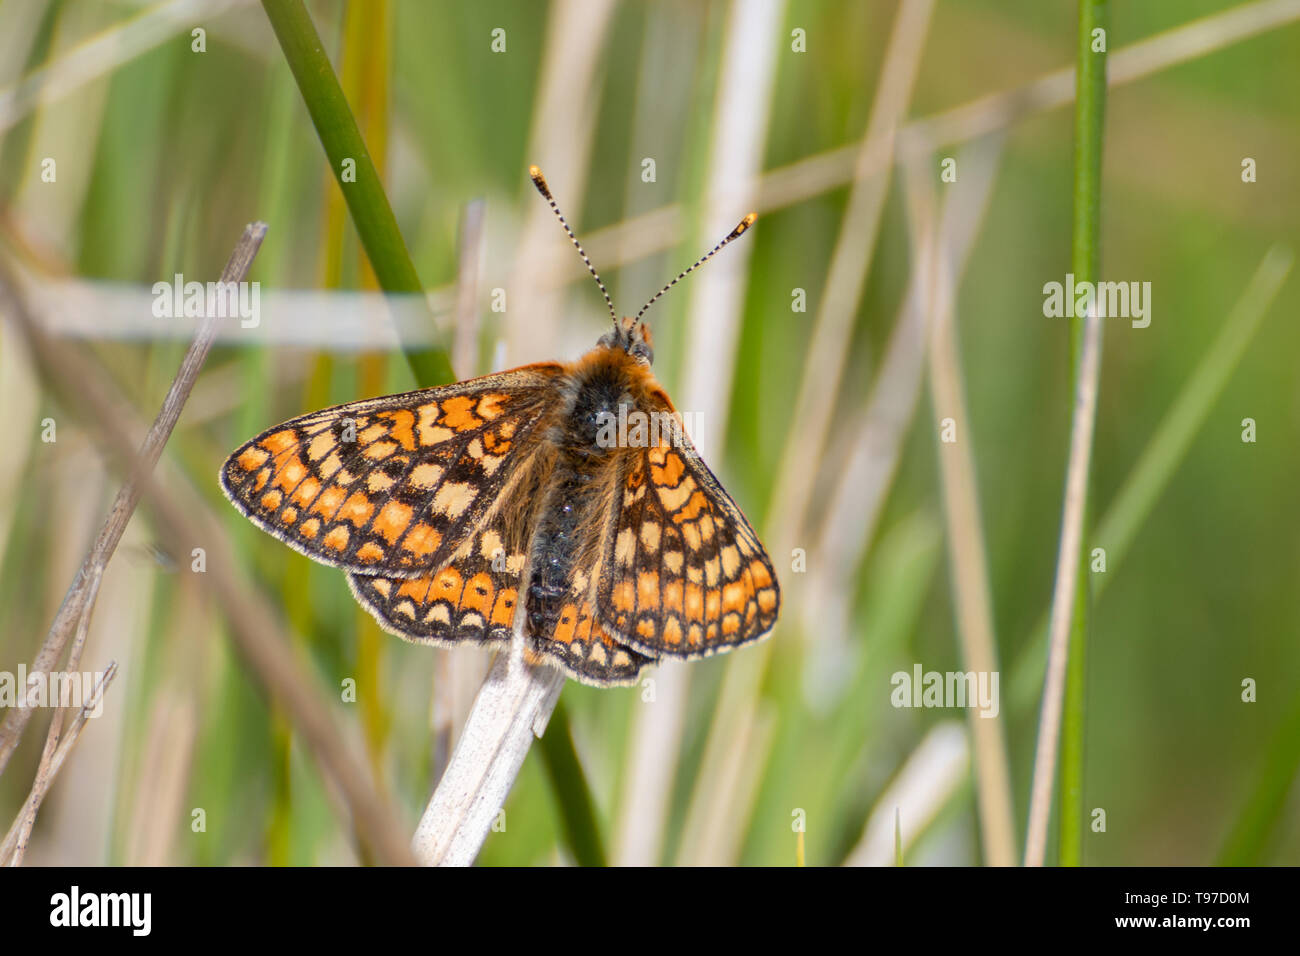 Marsh fritillary butterfly (Euphydryas aurinia) resting on grasses during May, UK - Stock Image